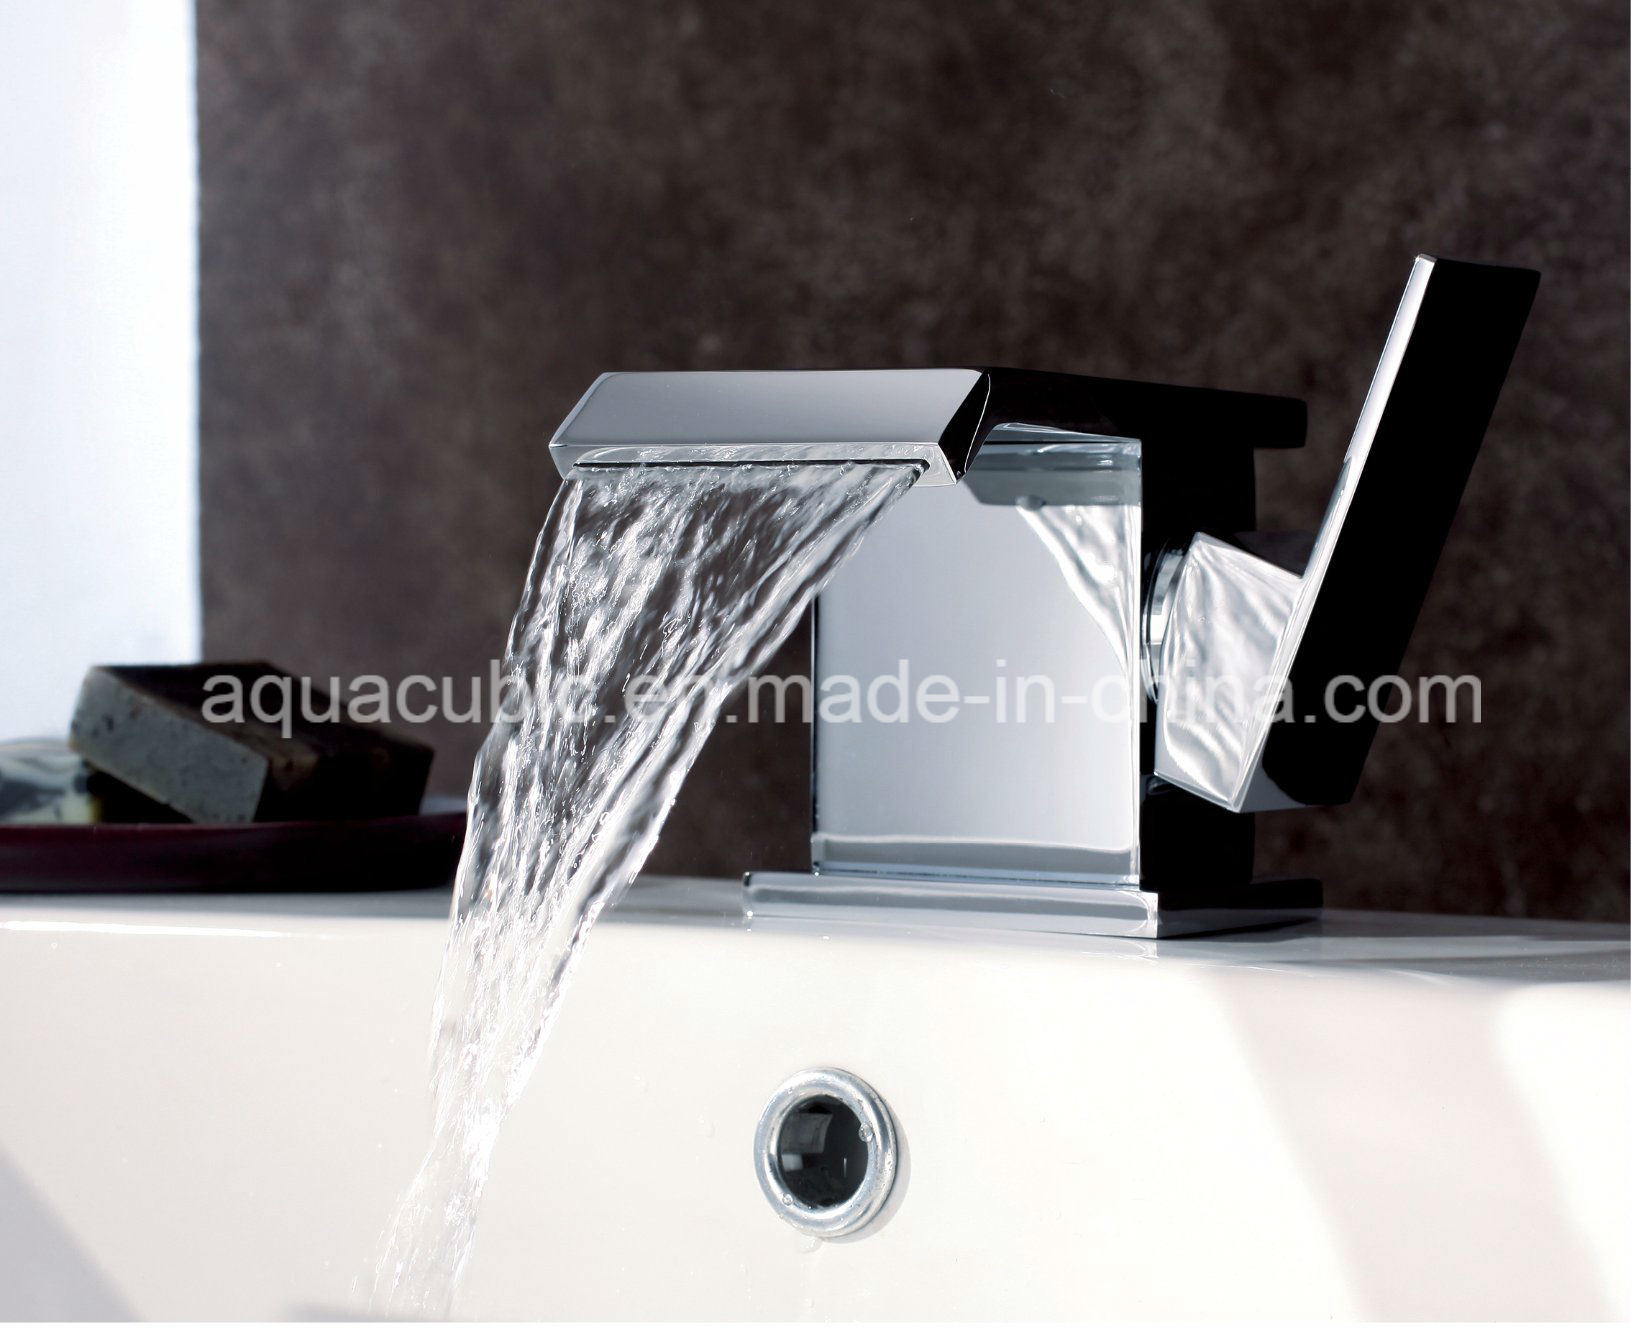 Sanitary Ware Brass Chromed Bathroom Basin Tap (AF6090-6) pictures & photos